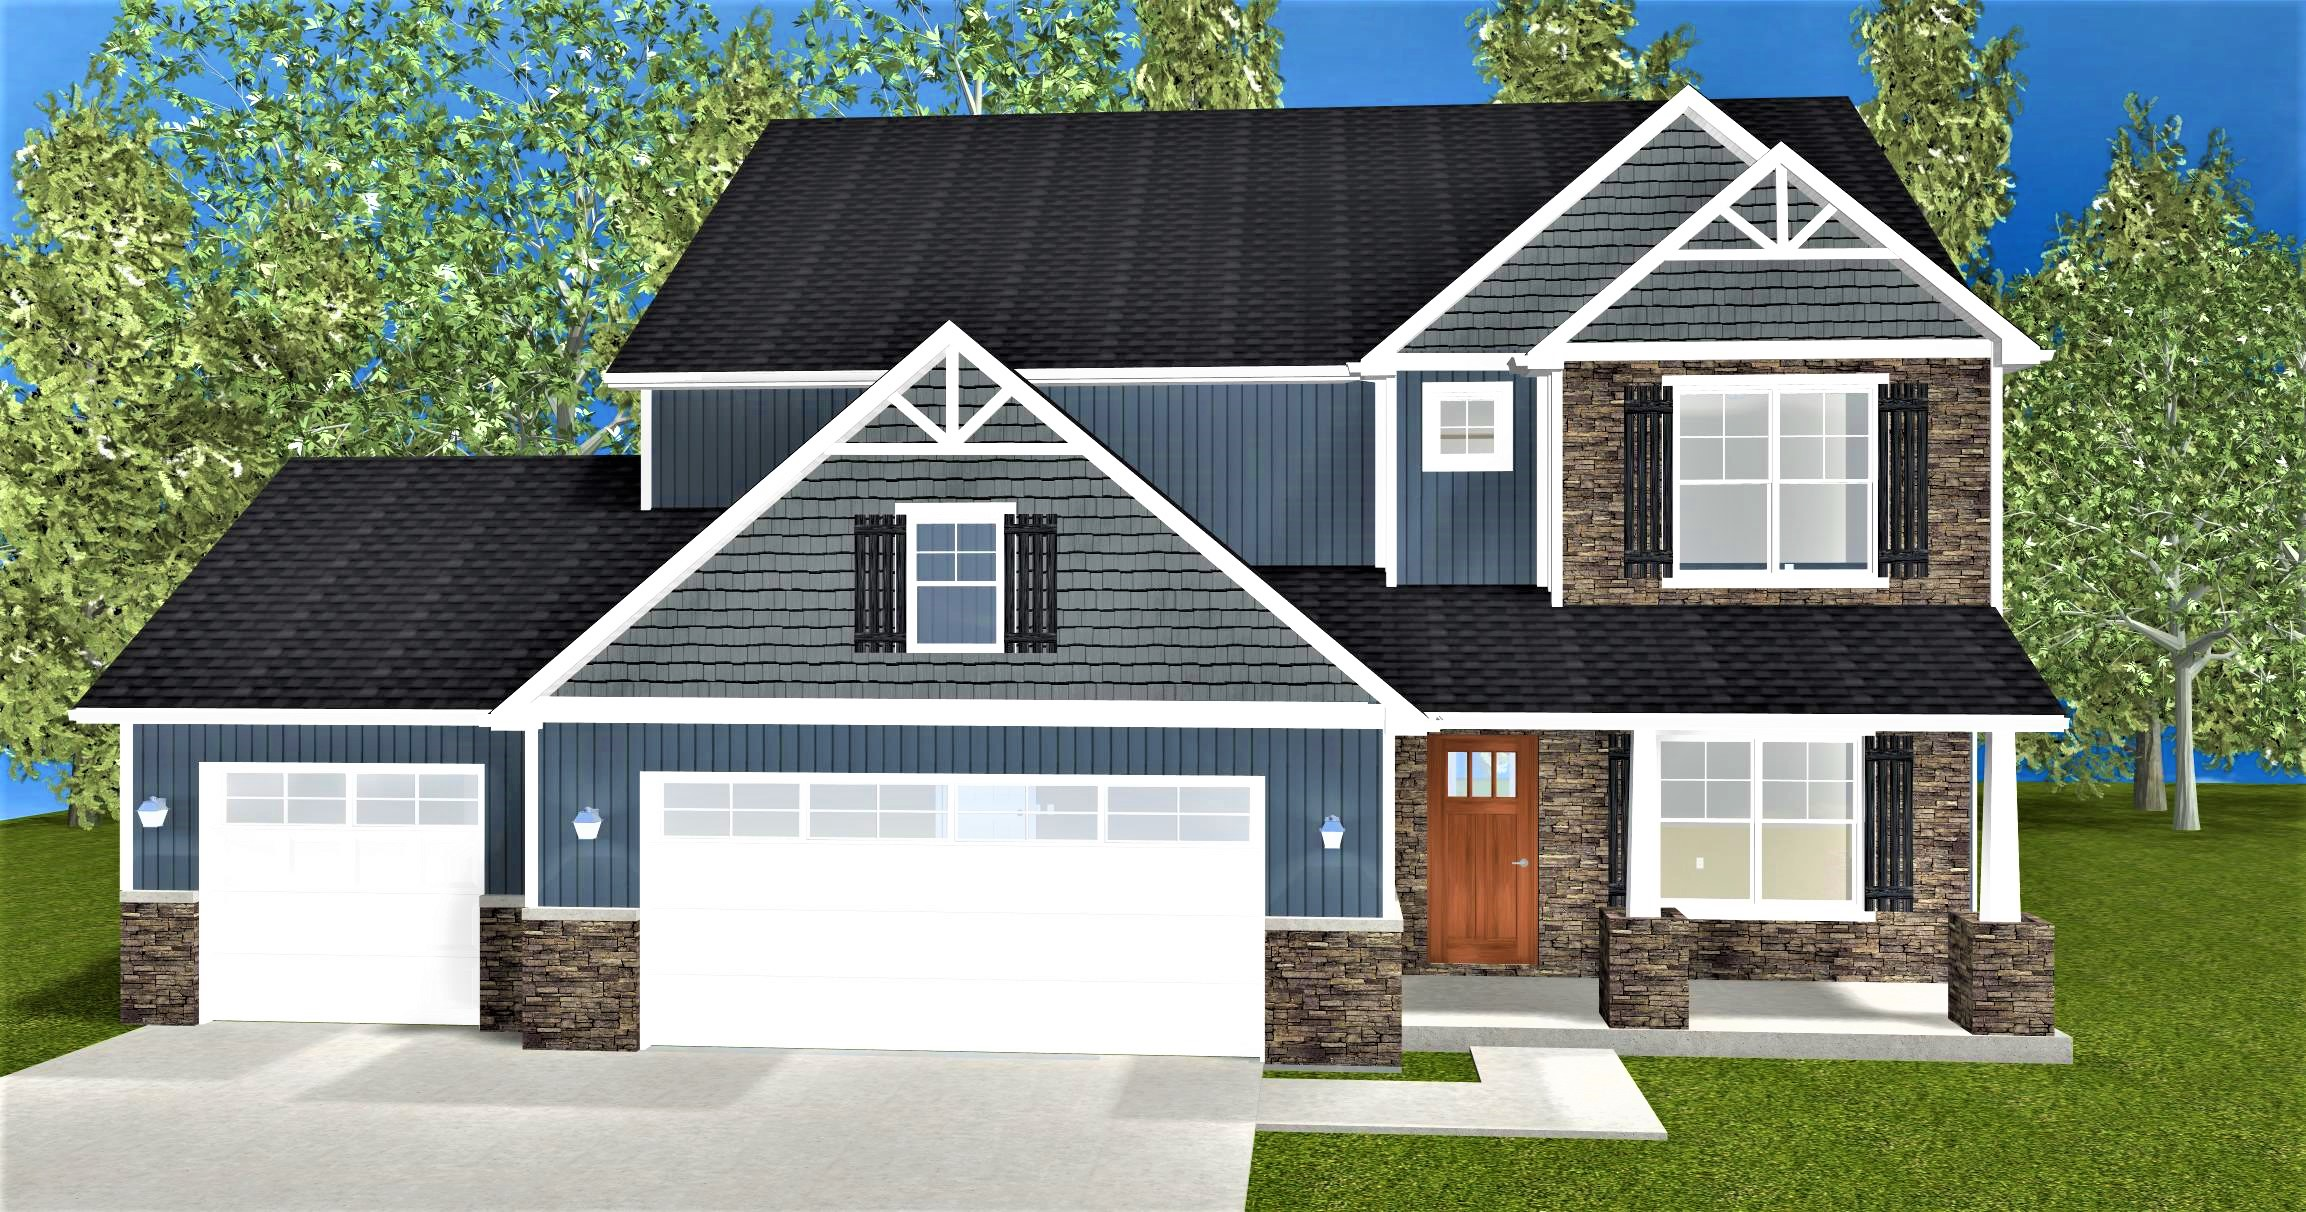 The Emma Grace – Starting at $299,900 with Lot